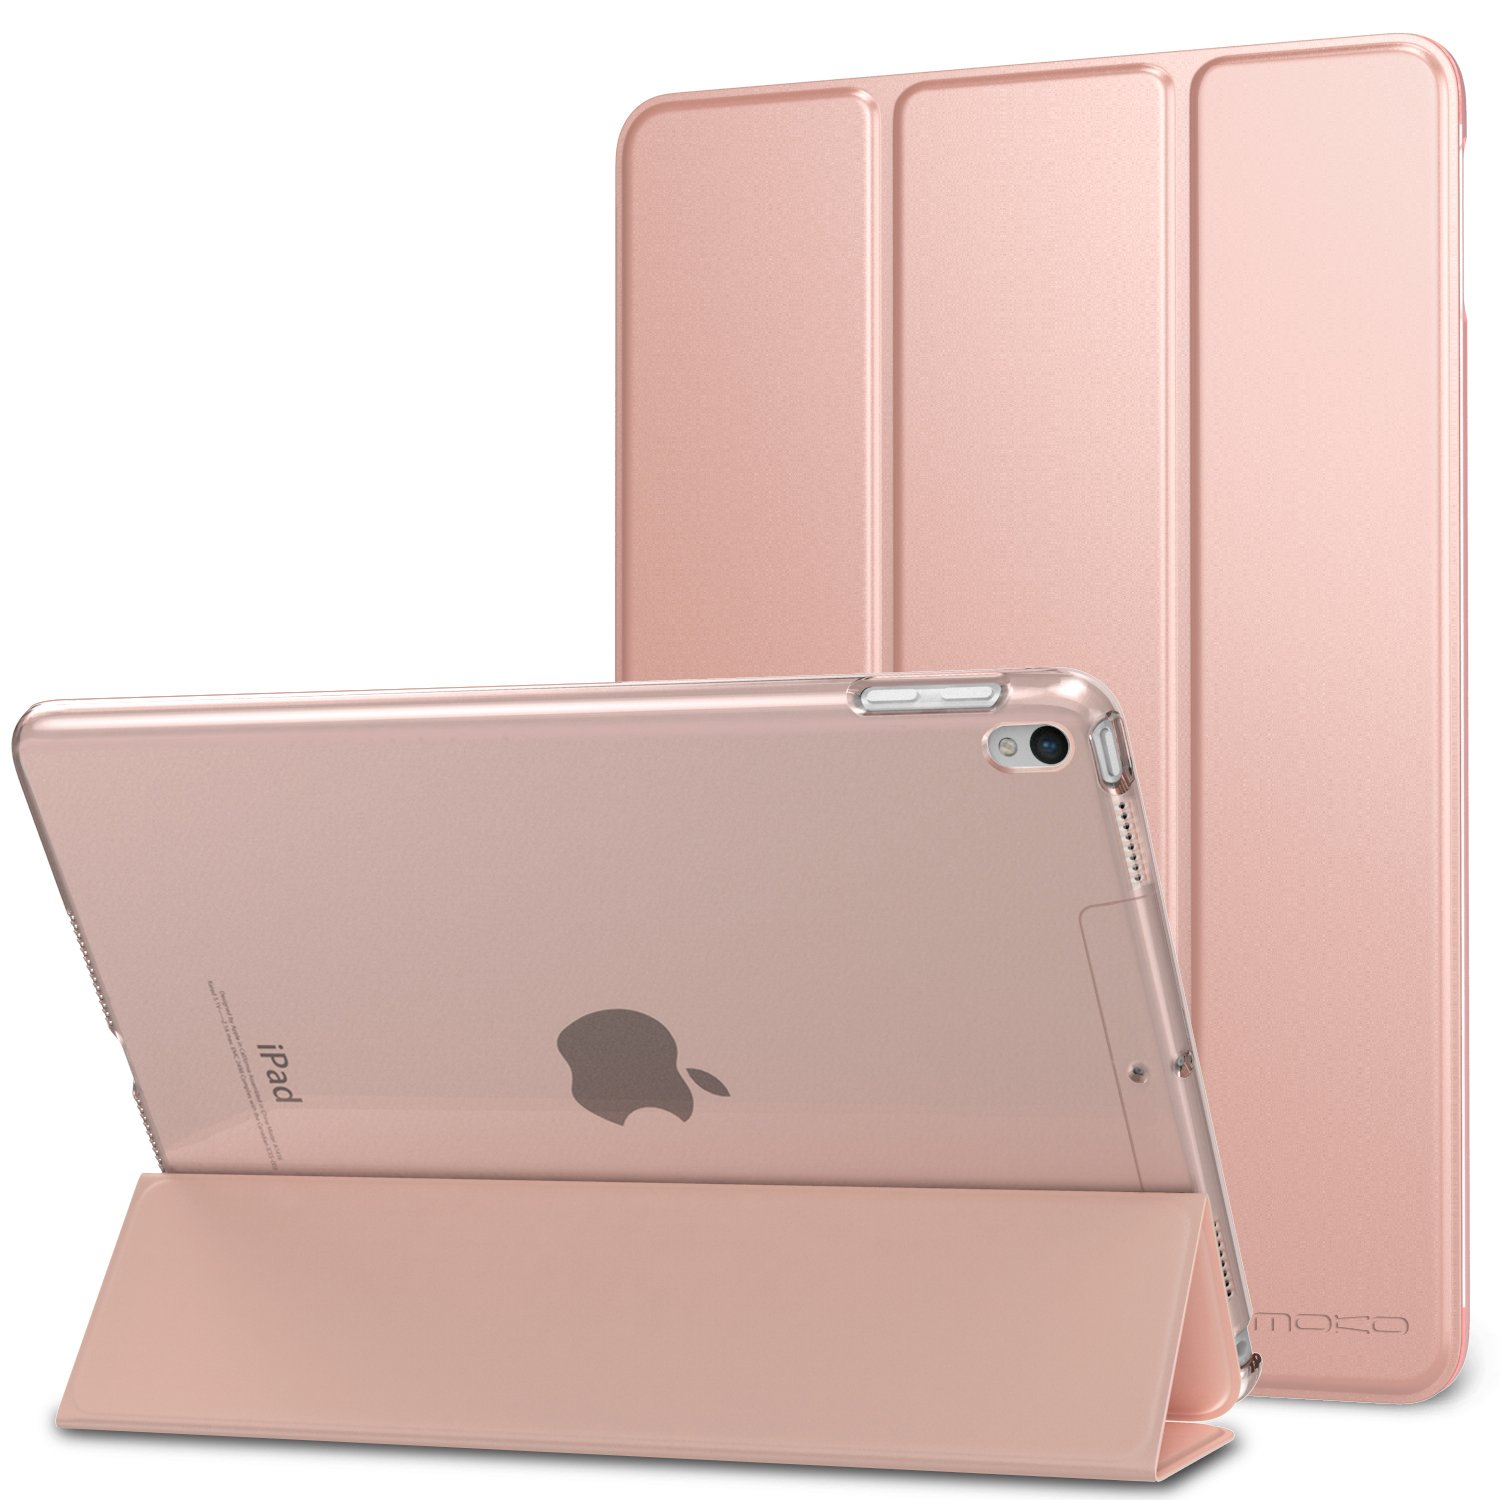 Moko Case for iPad Pro 10.5 - Slim Lightweight Smart Shell Stand Cover with Translucent Frosted Back Protector for Apple iPad Pro 10.5 inch 2017 Released Tablet, Rose Gold (Auto Wake/Sleep)